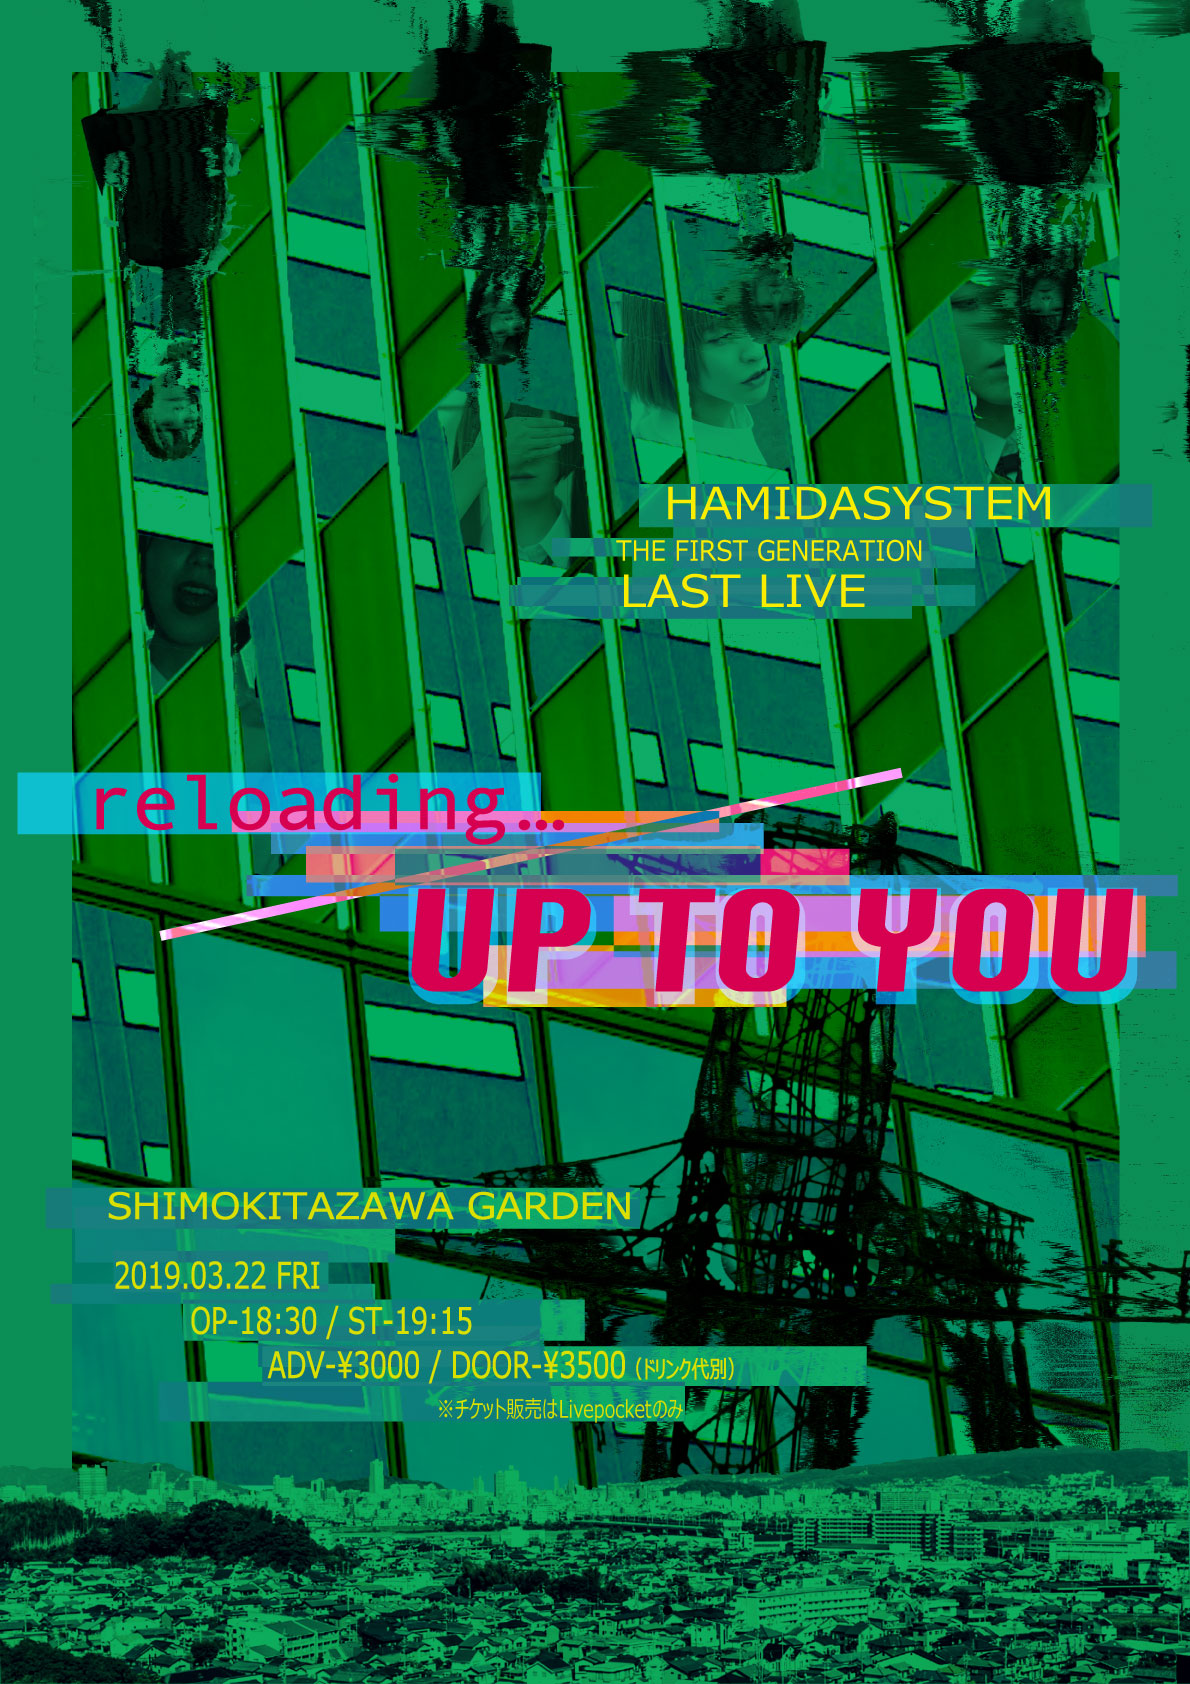 HAMIDASYSTEM The 1st Generation LAST LIVE「 reloading… / UP TO YOU 」